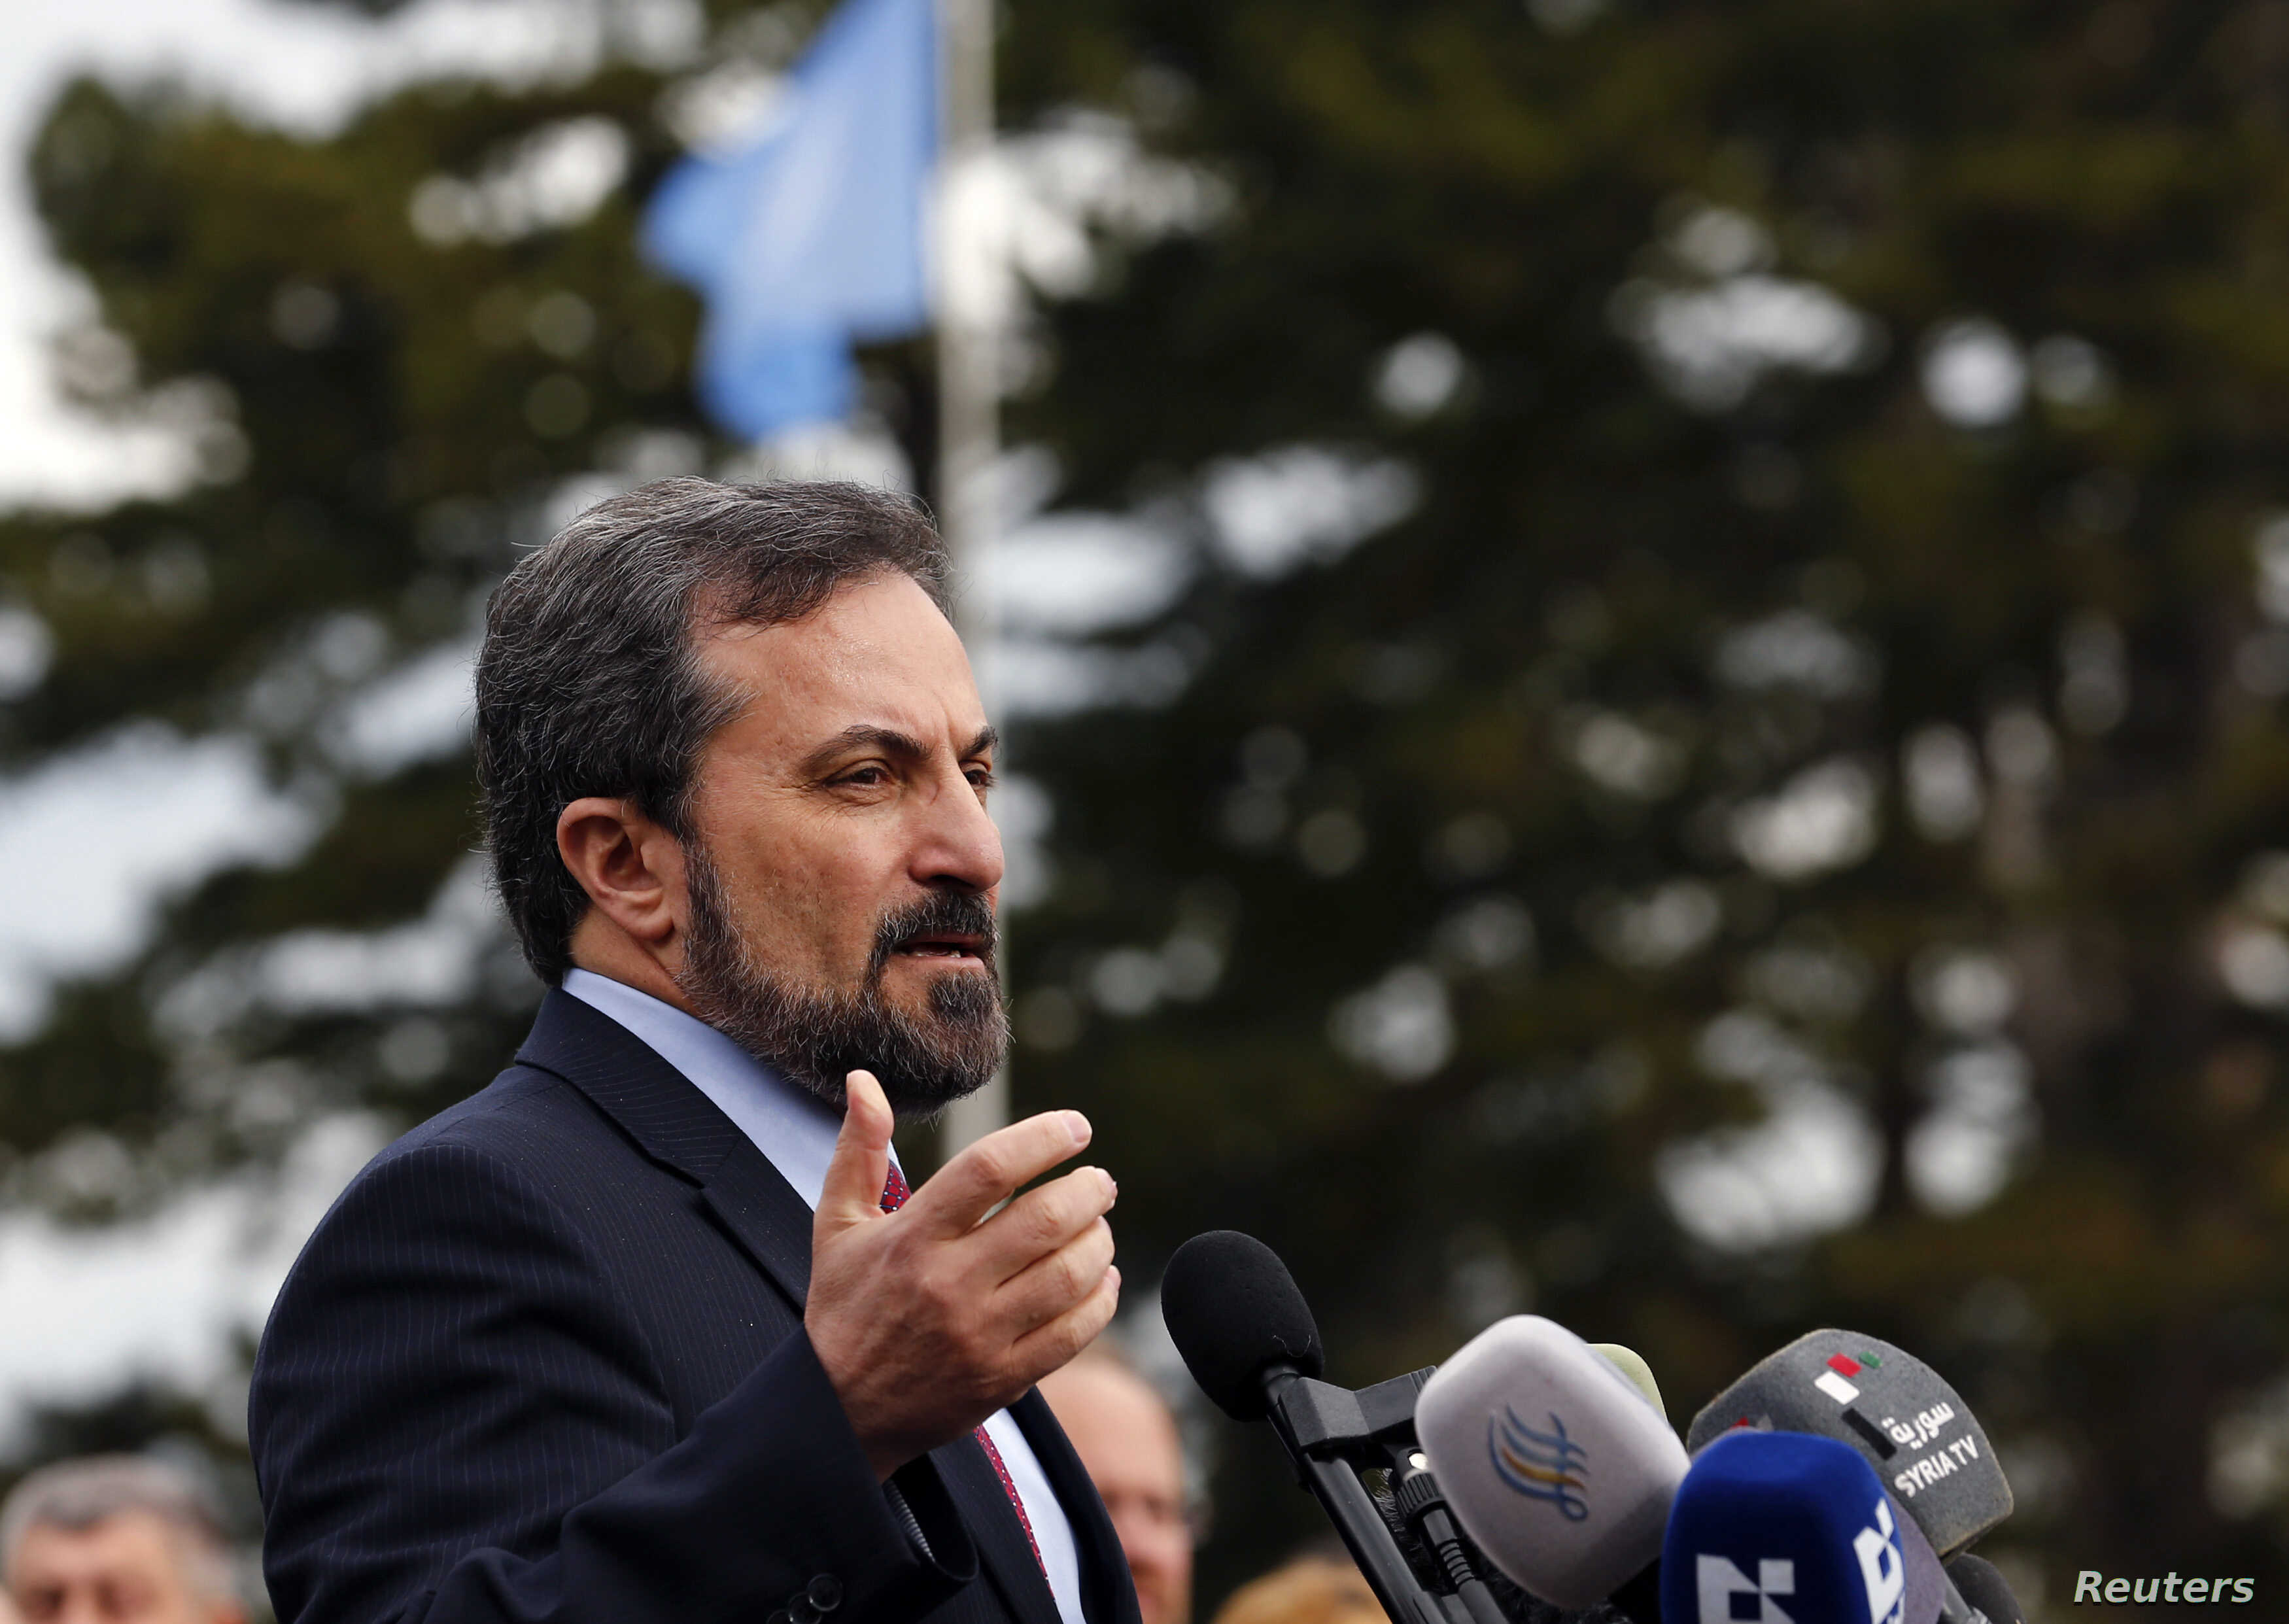 Syrian National Coalition spokesperson Louay Safi addresses the media after a meeting at the Geneva Conference on Syria, February 15, 2014.